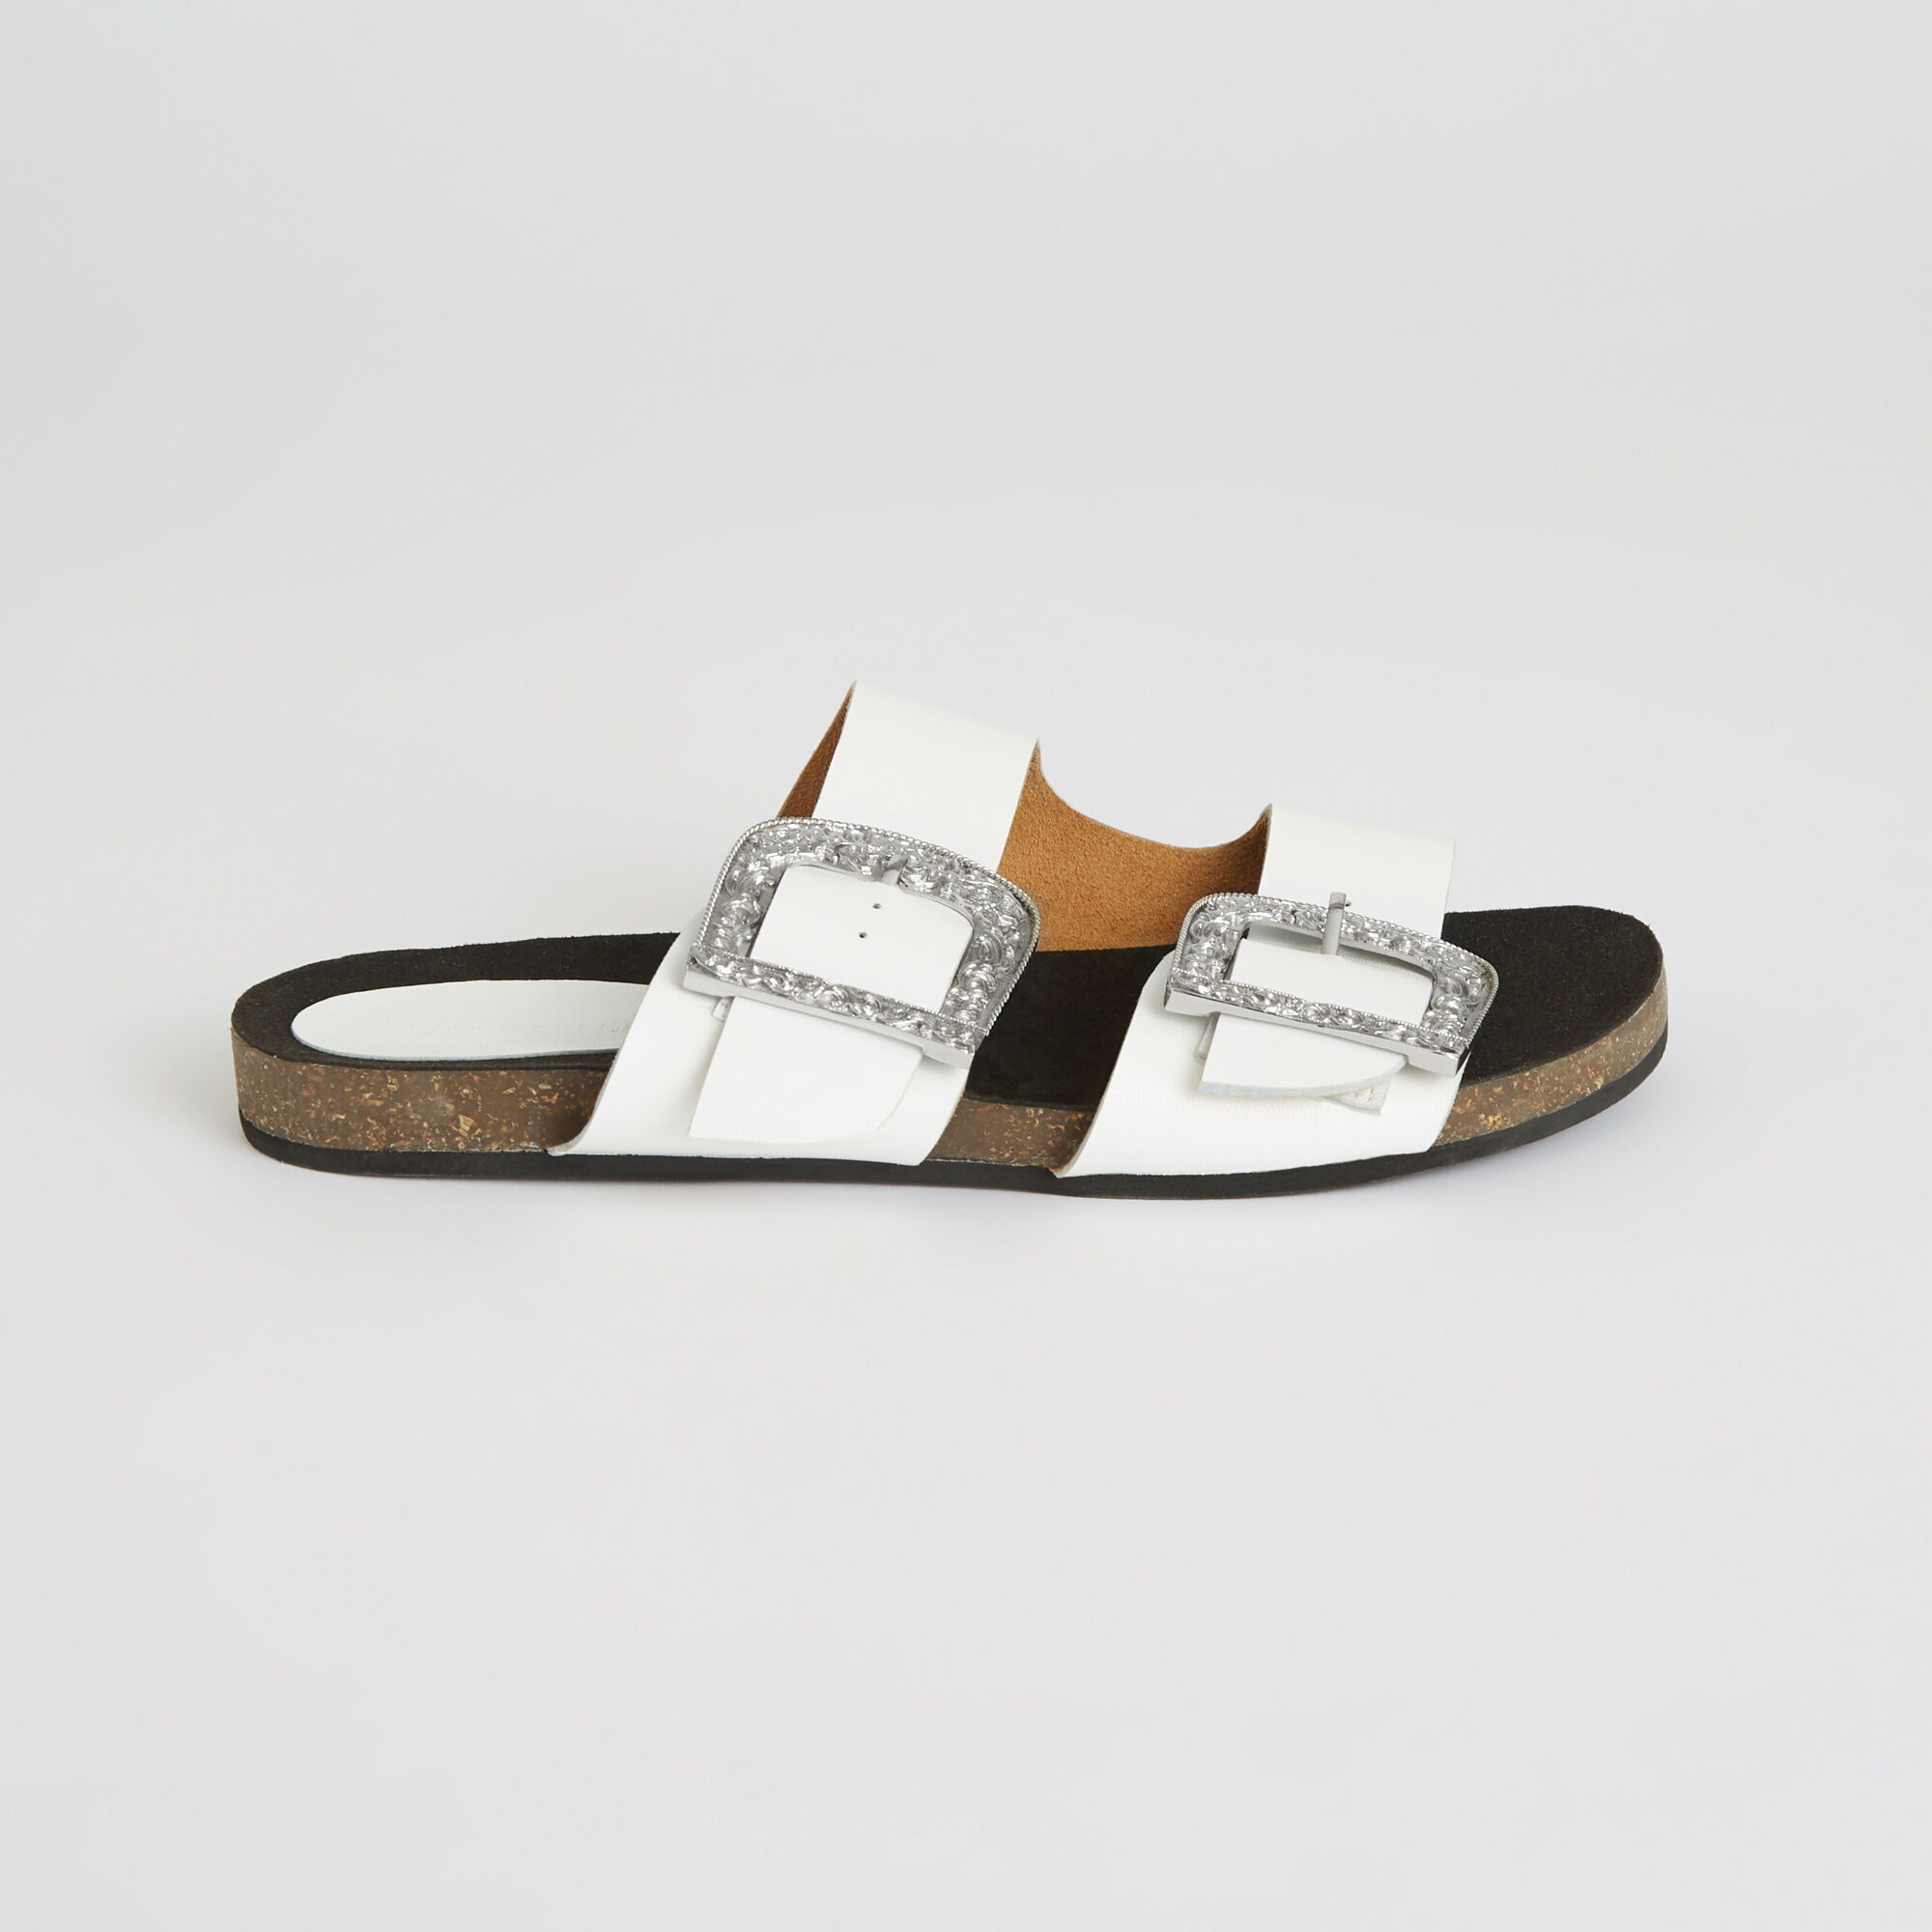 WESTERN BUCKLE FOOTBED SANDALS   Warehouse